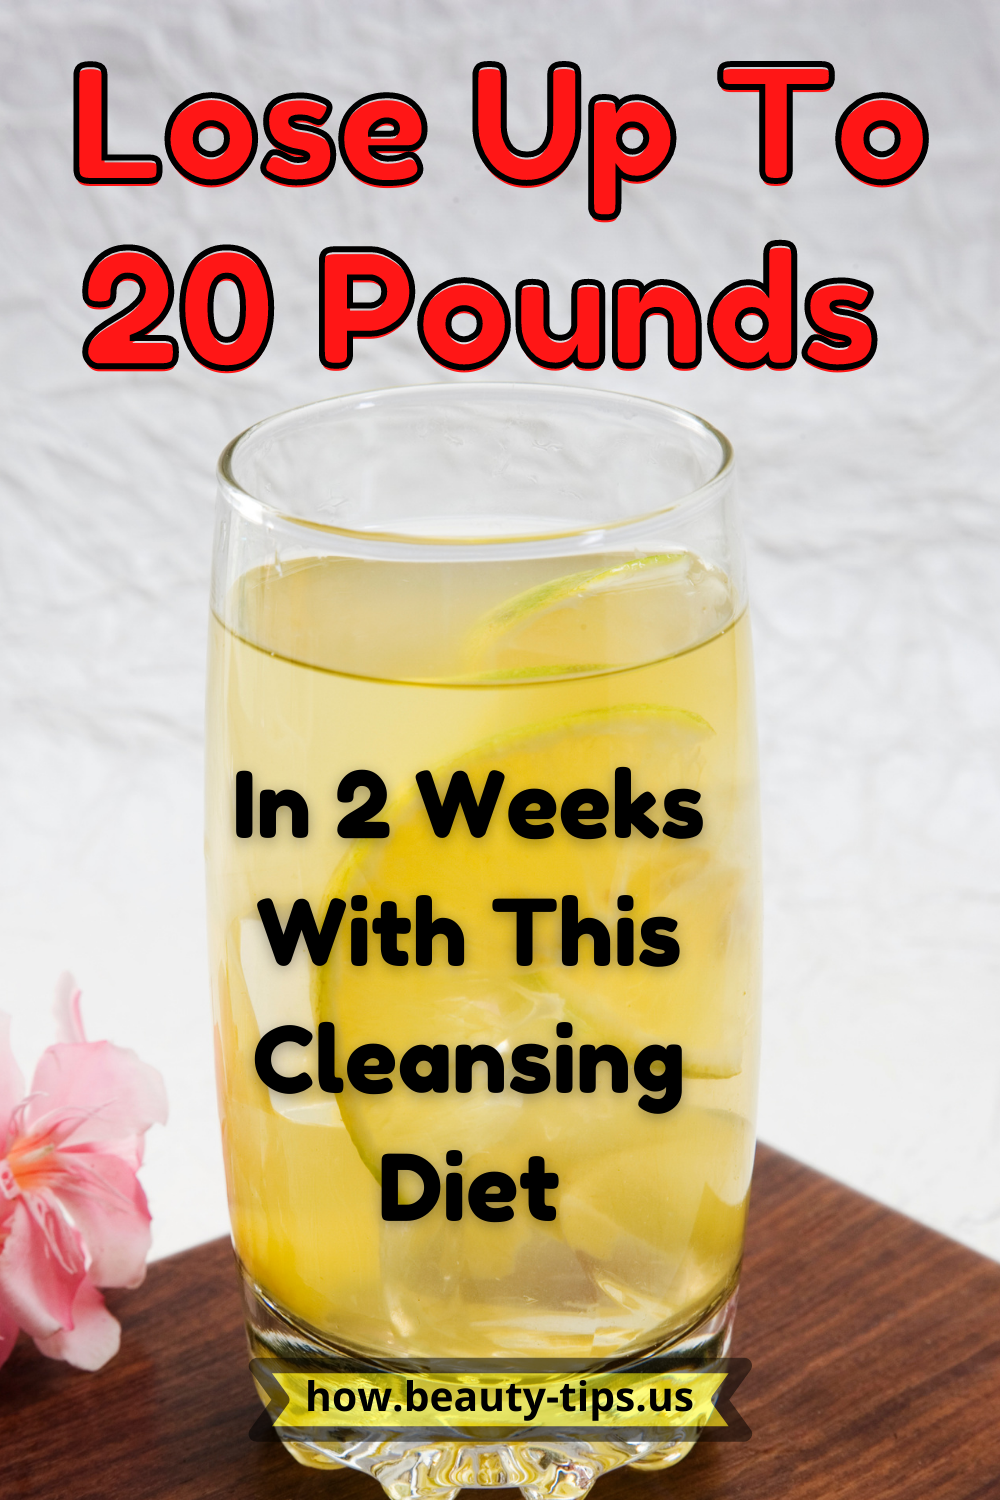 Lose Up To 20 Pounds In 2 Weeks With This Cleansing Diet